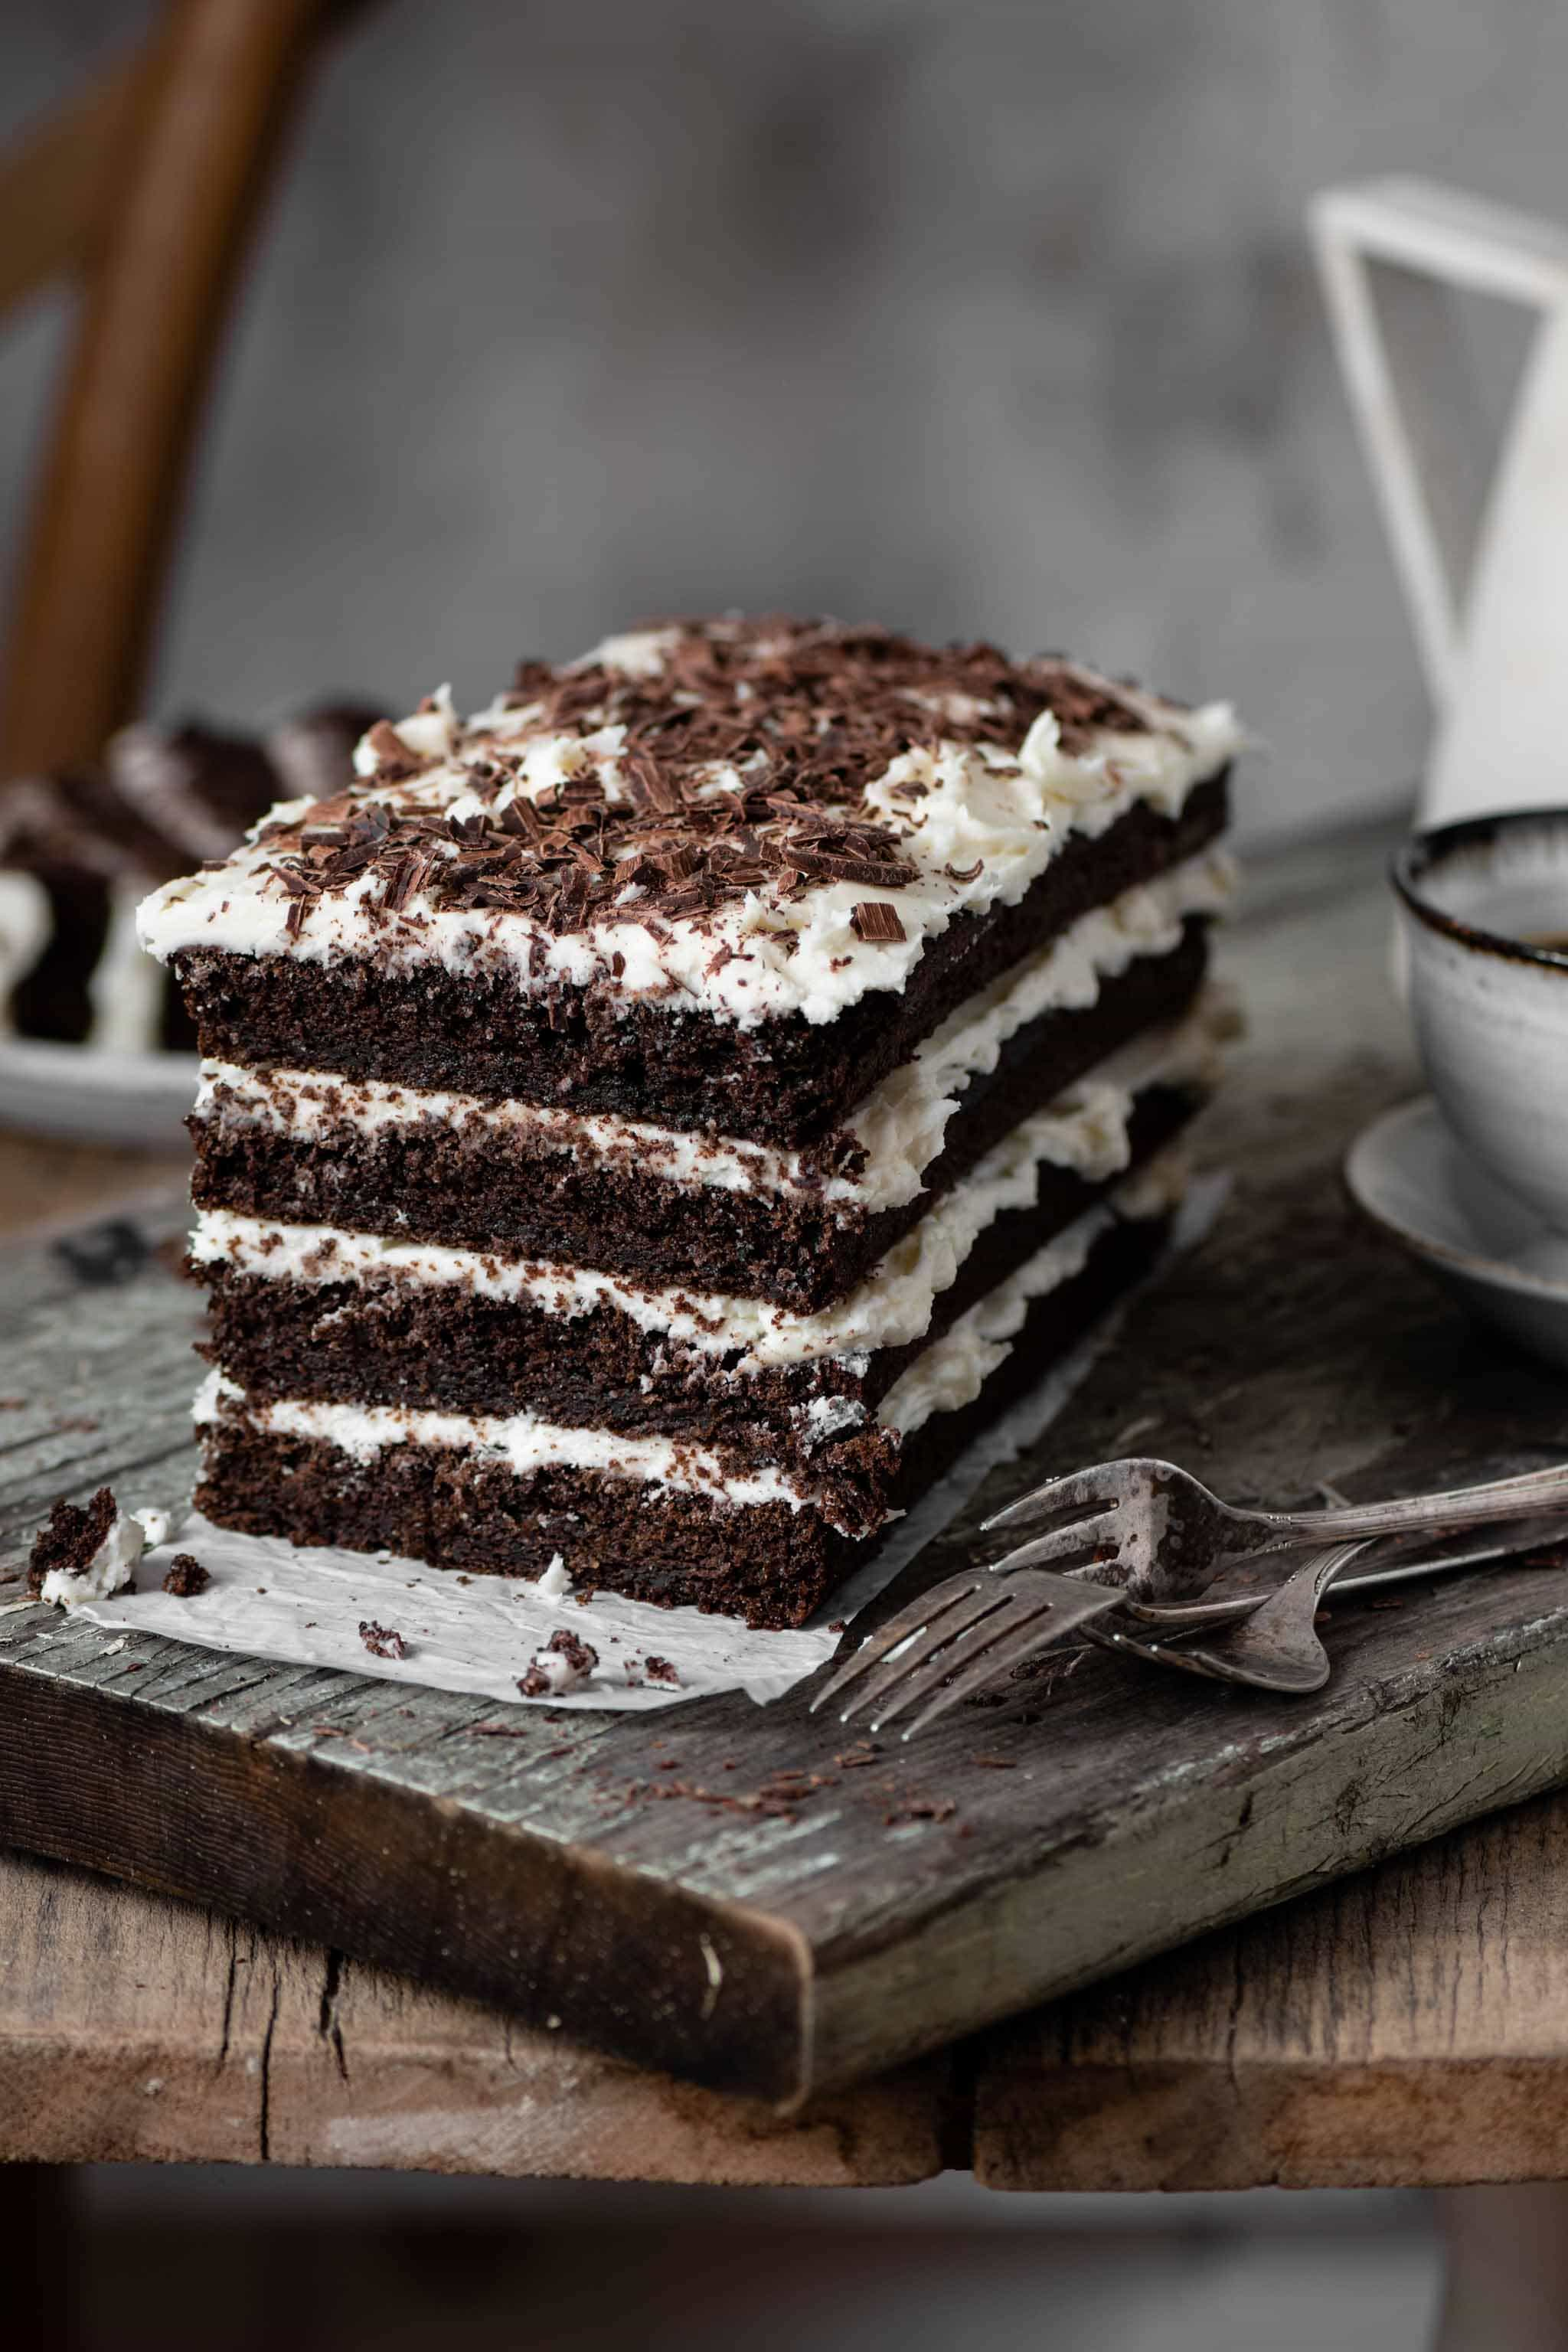 Mocha Chocolate Layer Cake with vanilla cream cheese frosting.